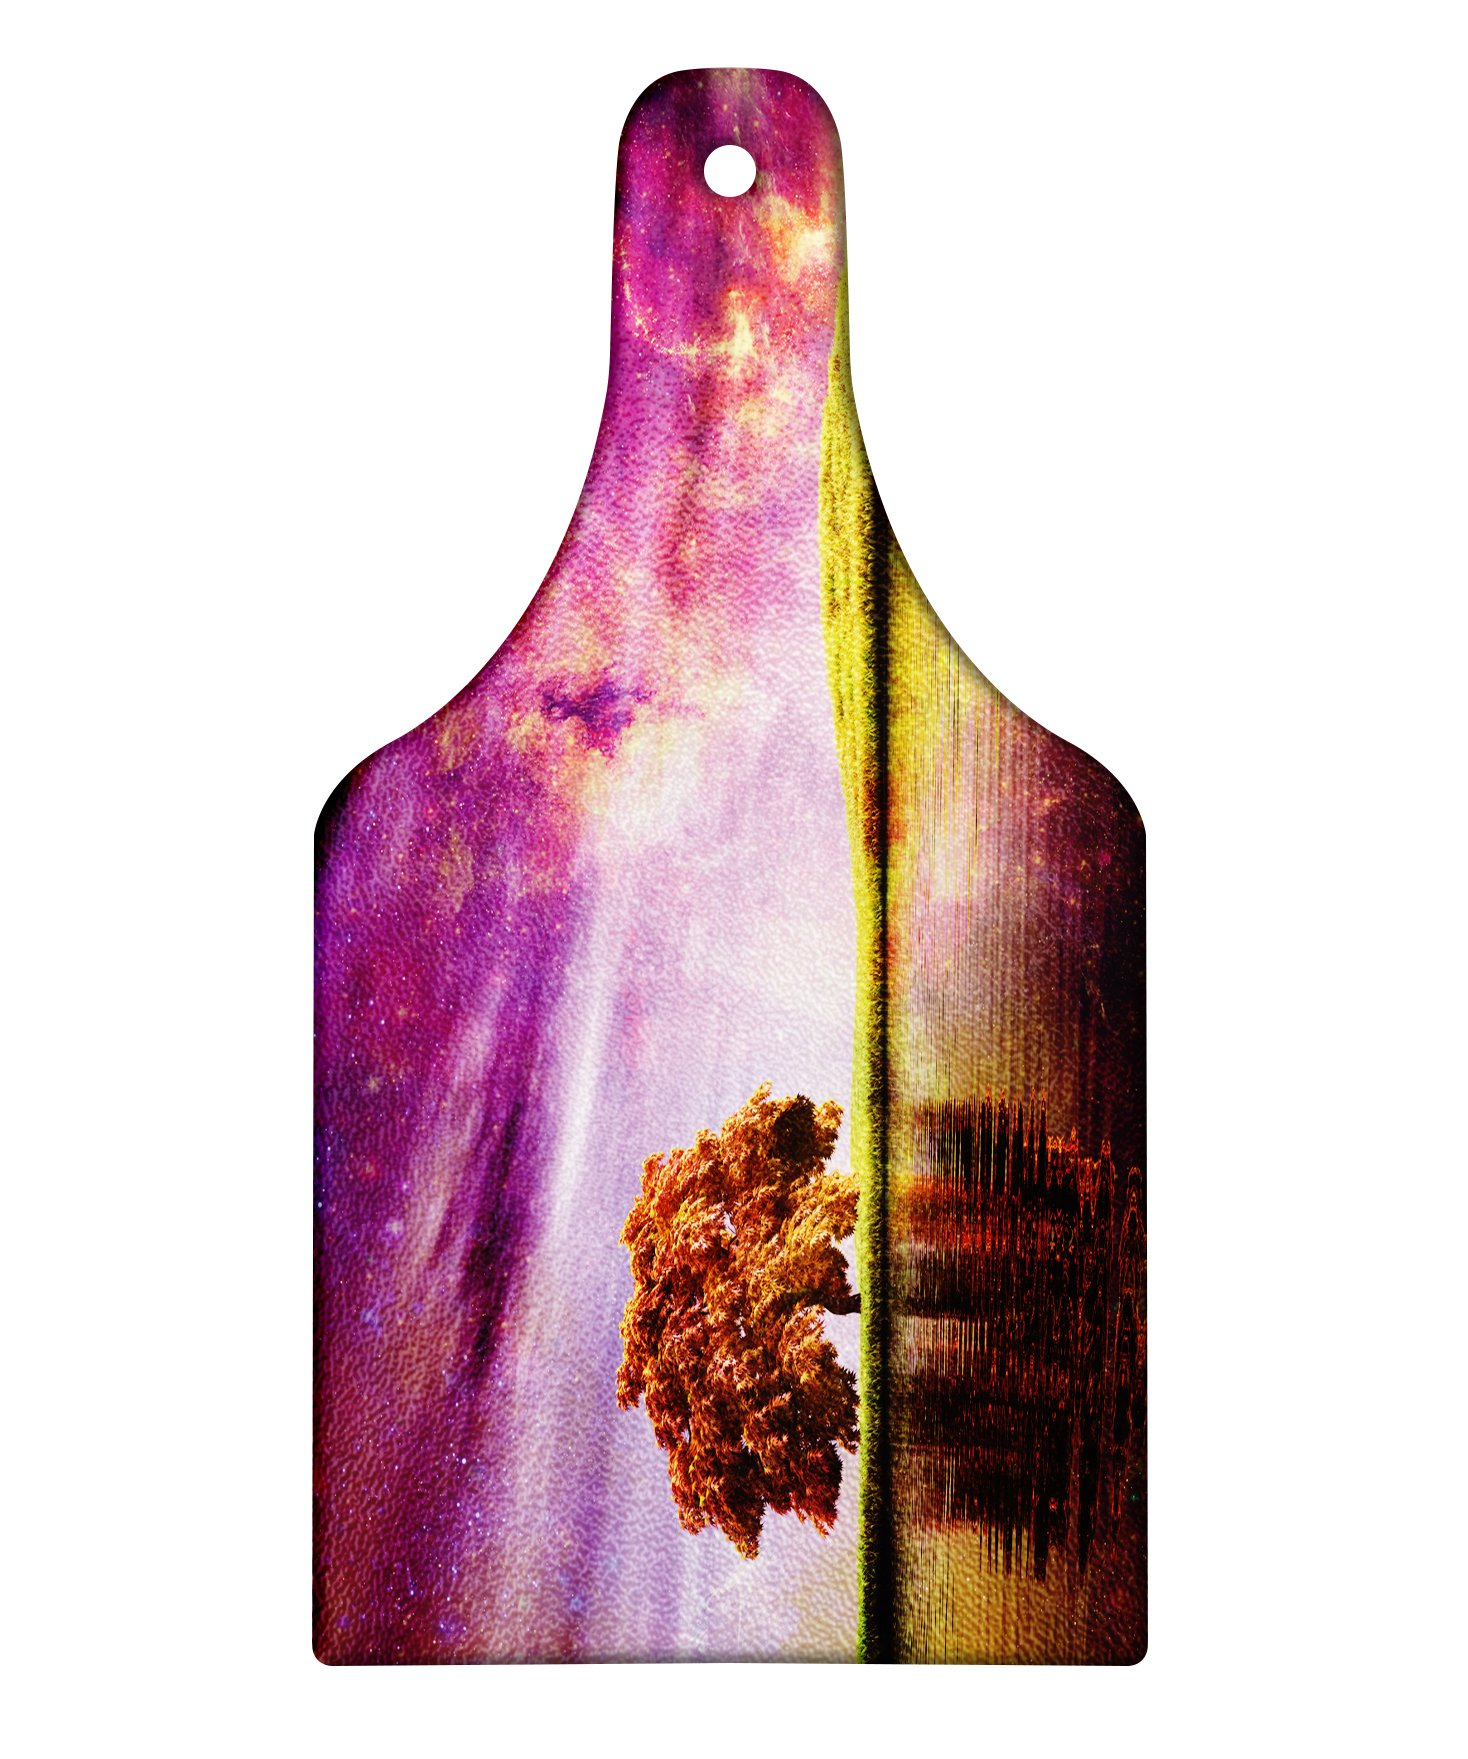 Lunarable Magical Cutting Board, Supernatural Sky Scenery with Mystical Northern Solar Theme and Star Clusters Photo, Decorative Tempered Glass Cutting and Serving Board, Wine Bottle Shape, Purple